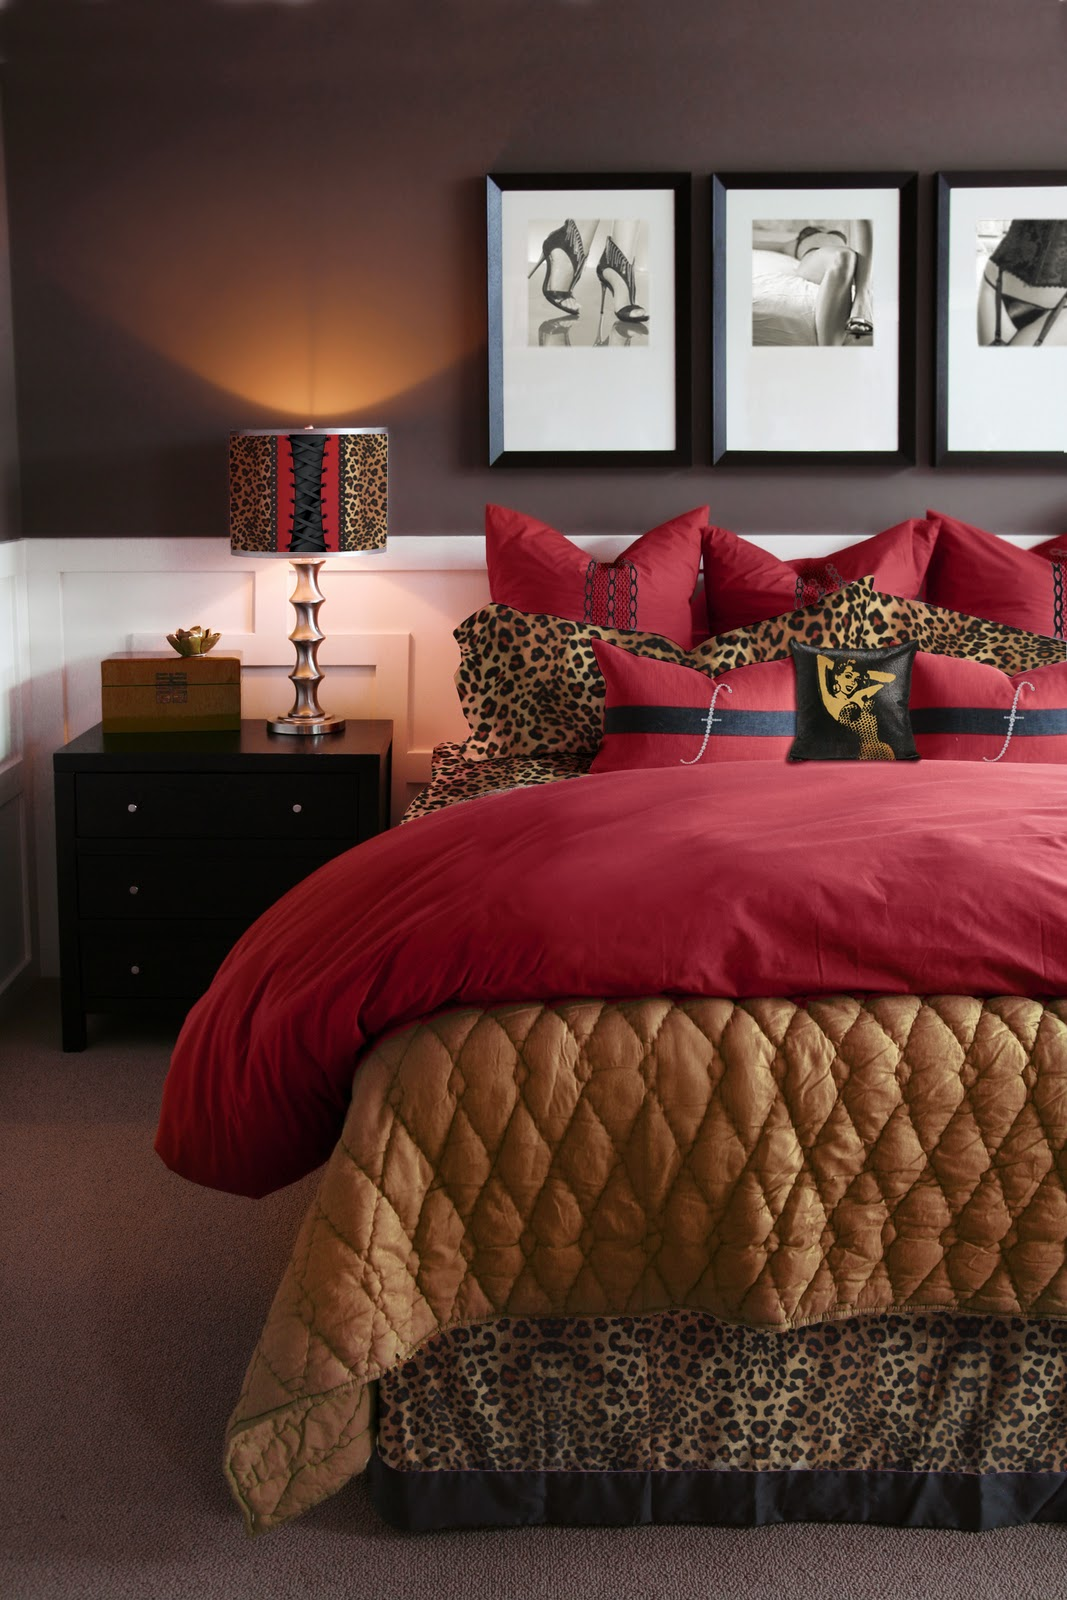 Bexcetera A Sexy Bedroom For Valentine S Day